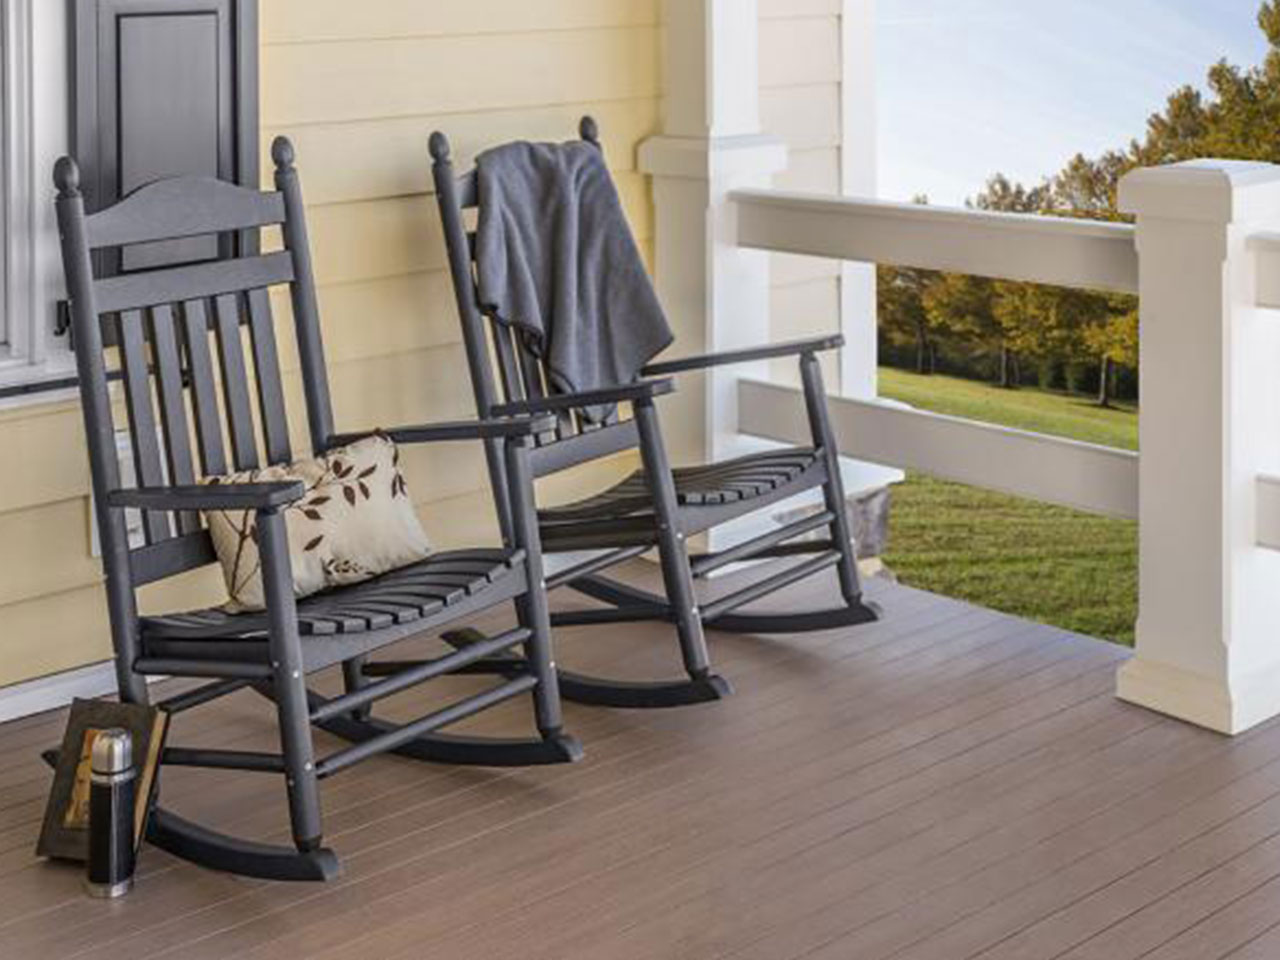 Outdoor furniture - poly rocker